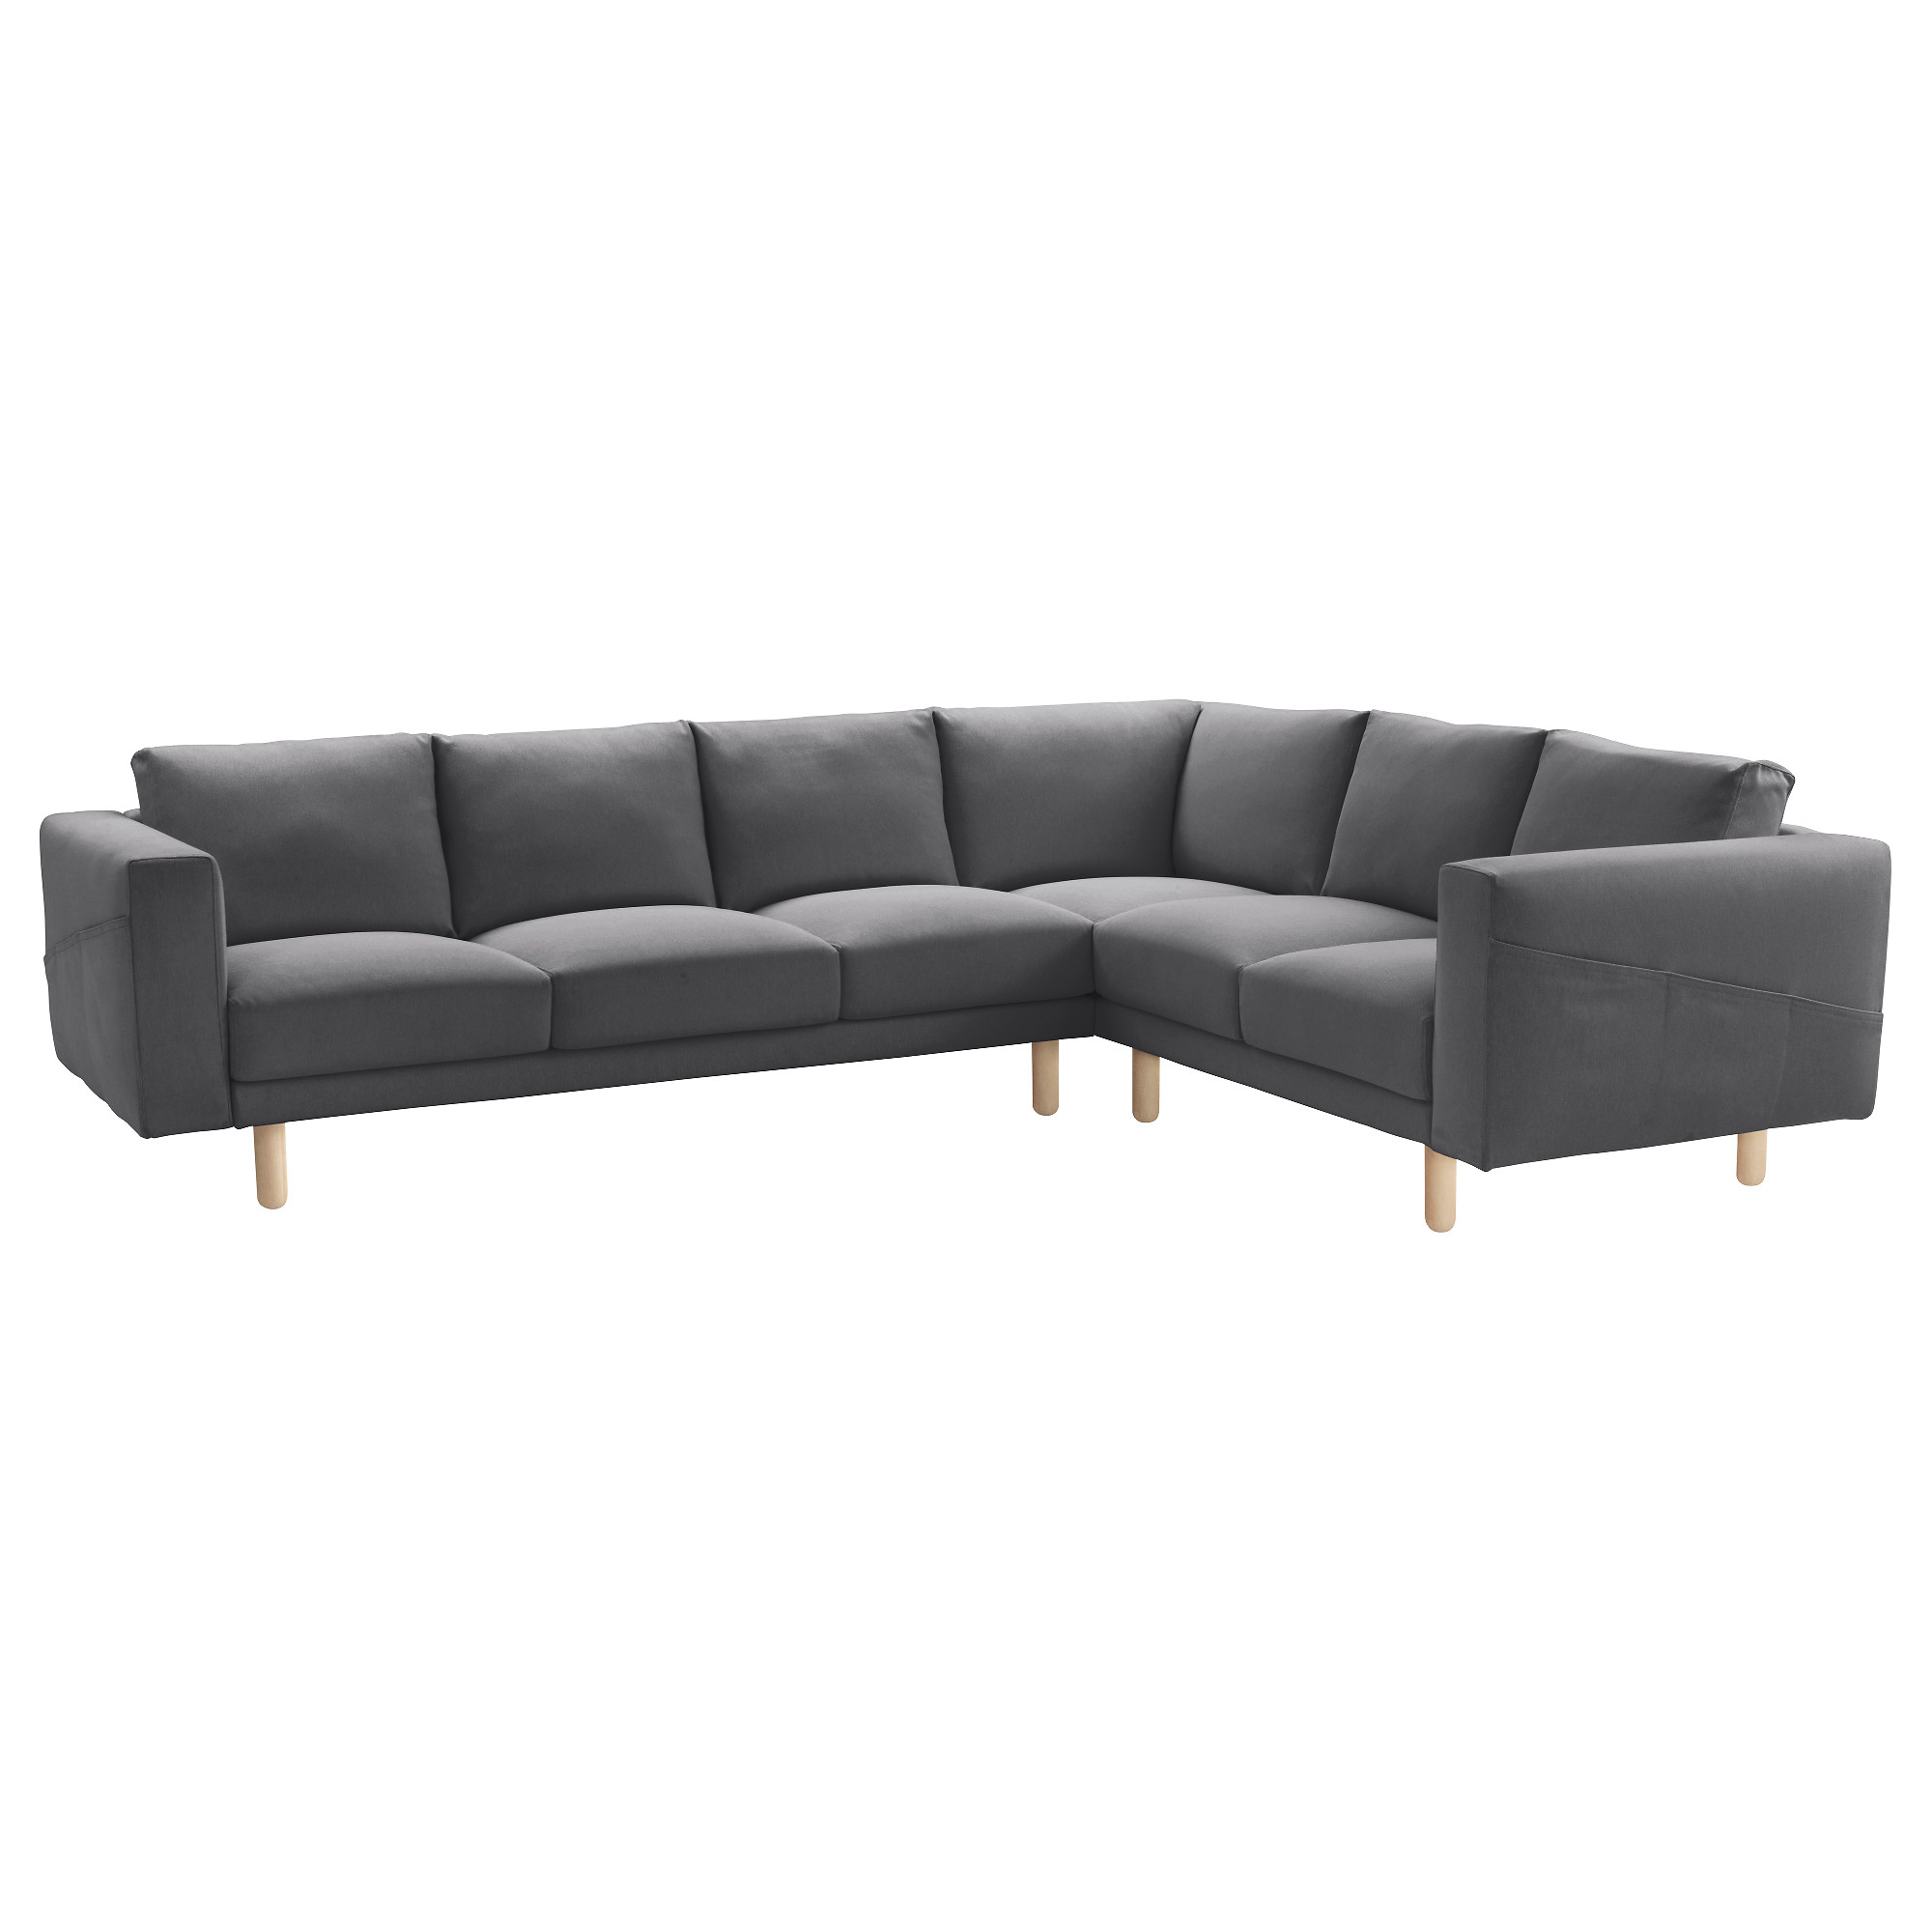 Trendy Denali Charcoal Grey 6 Piece Reclining Sectionals With 2 Power Headrests Throughout Sectional Corner Sofa (View 20 of 20)